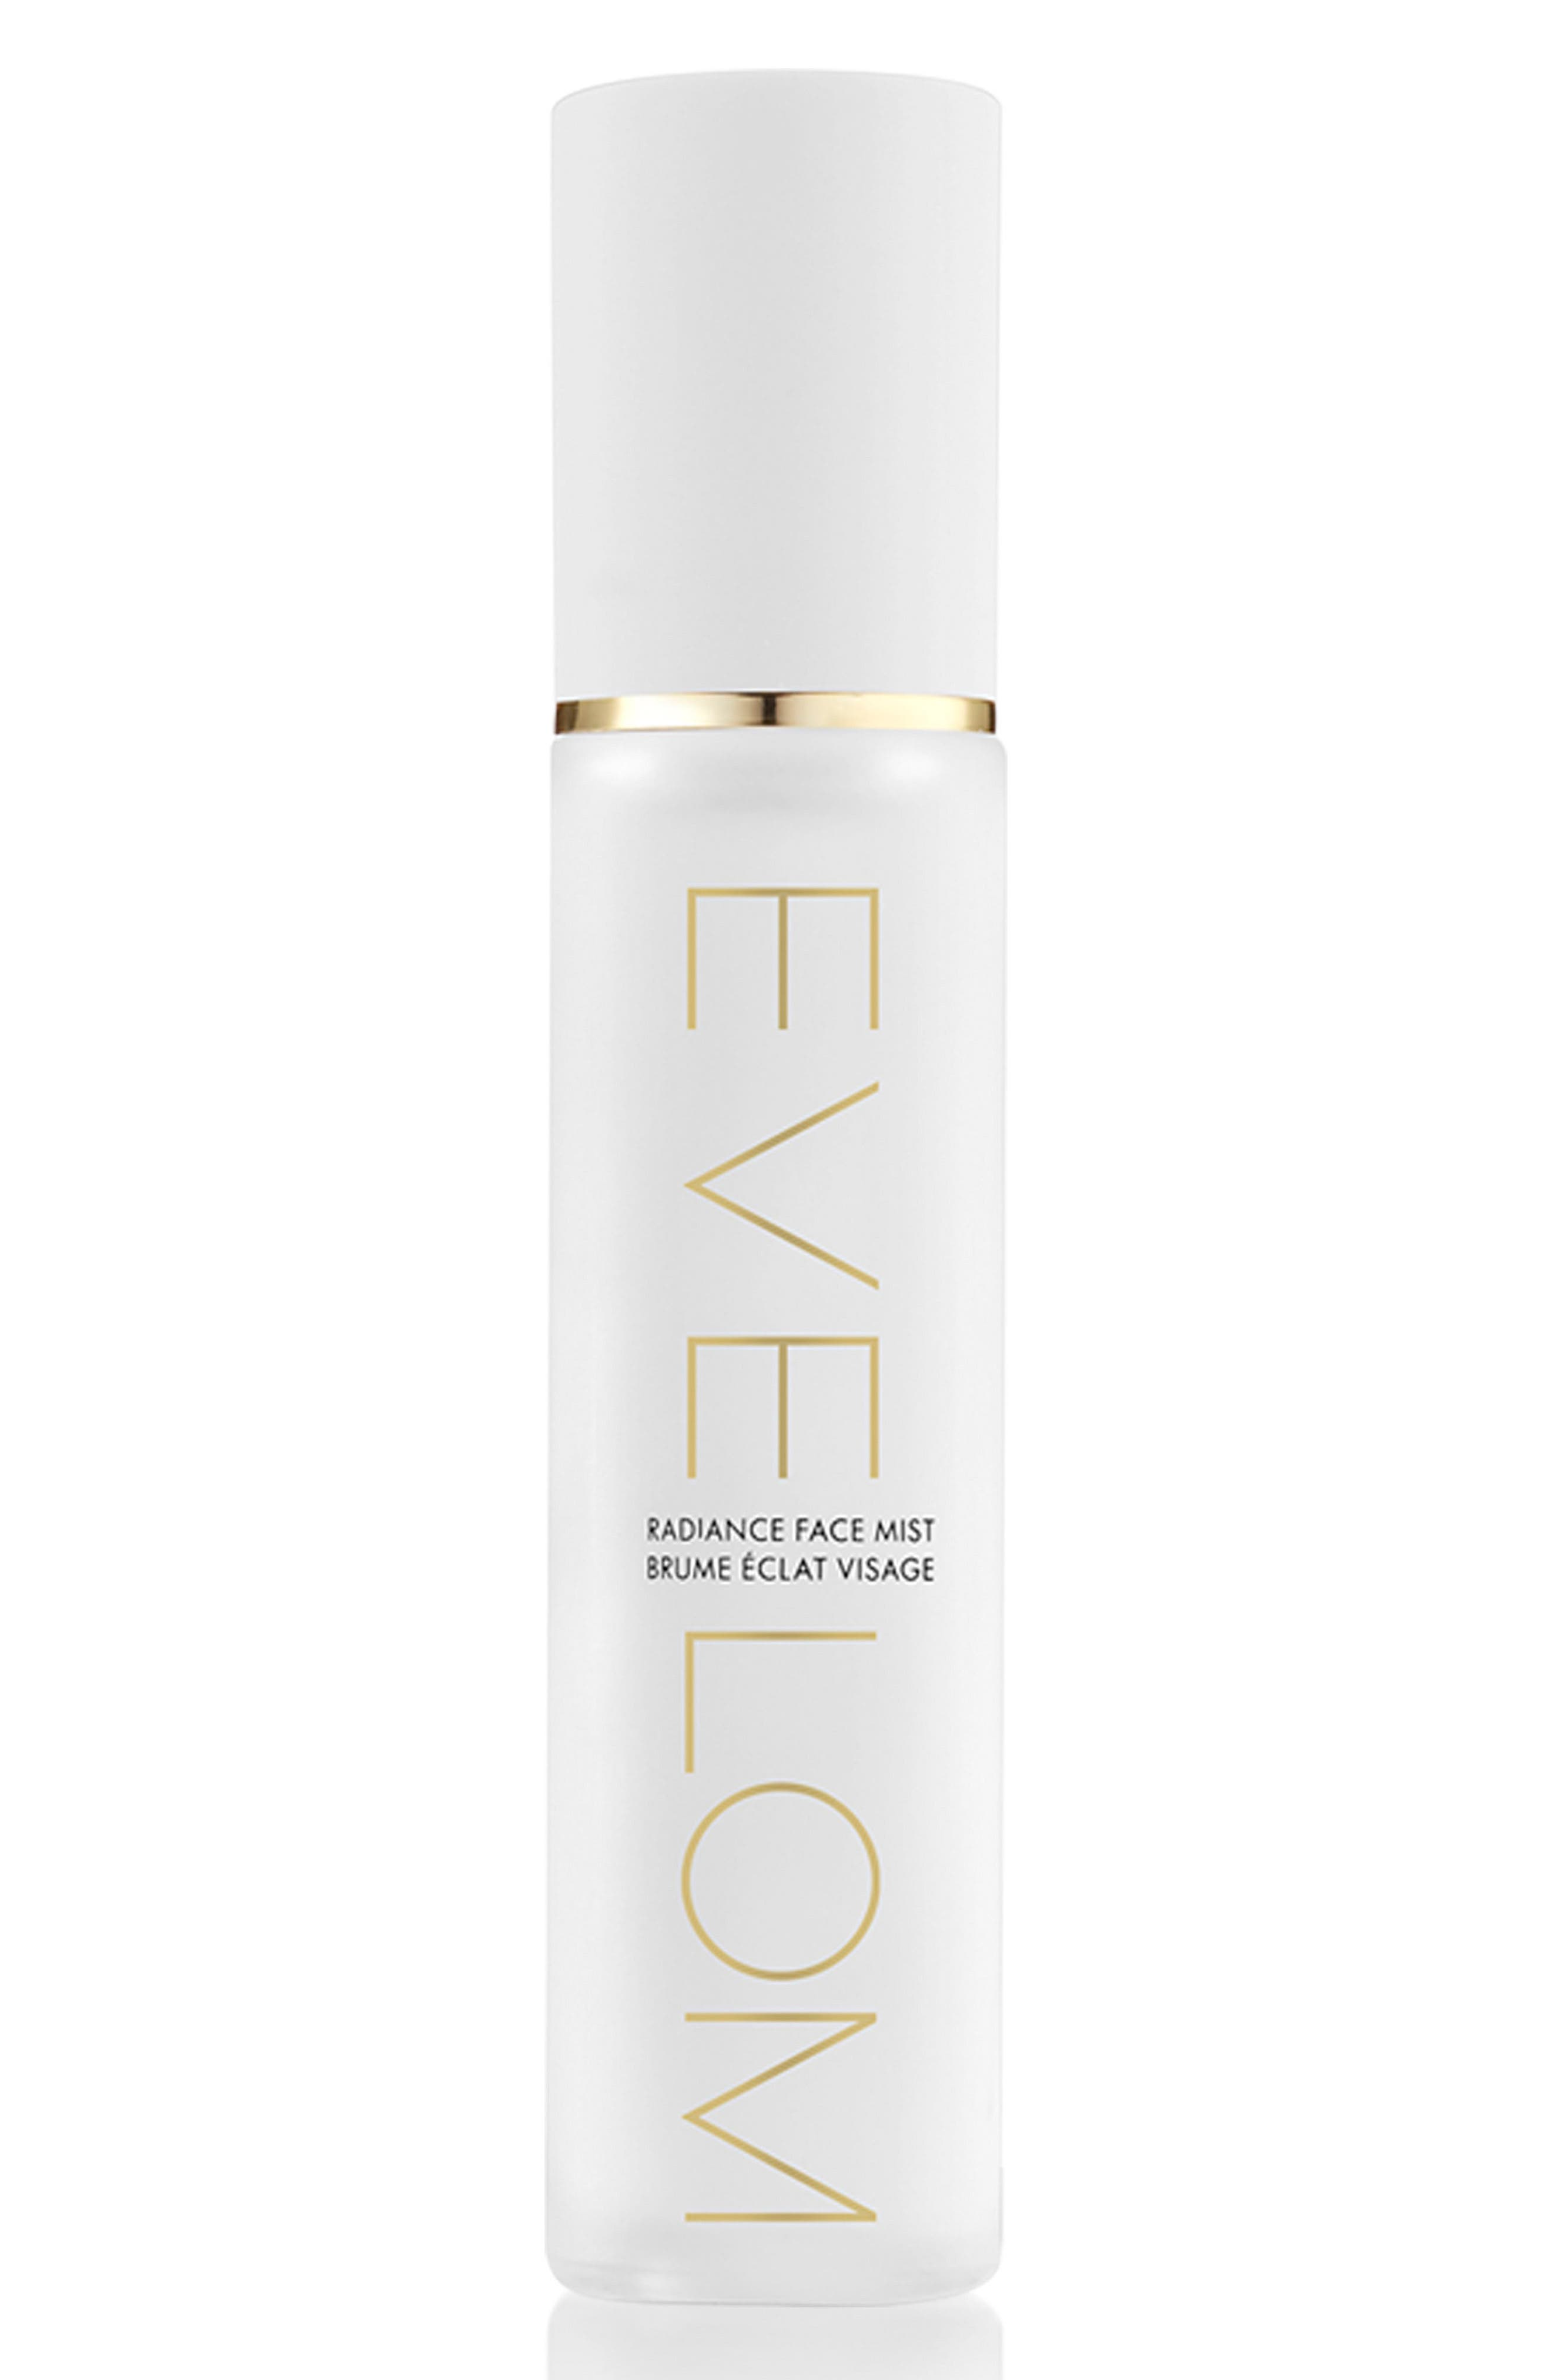 SPACE.NK.apothecary EVE LOM Radiance Face Mist,                             Main thumbnail 1, color,                             No Color